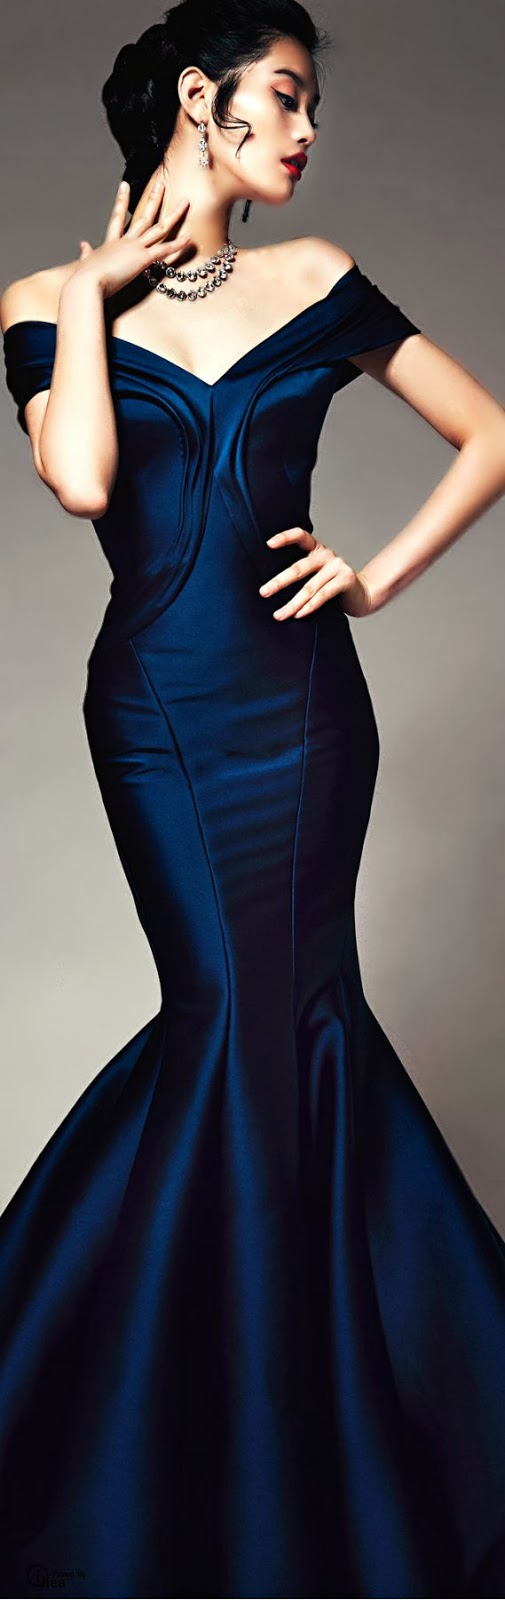 Amazing fashionable dark blue night dress - woman inspiration